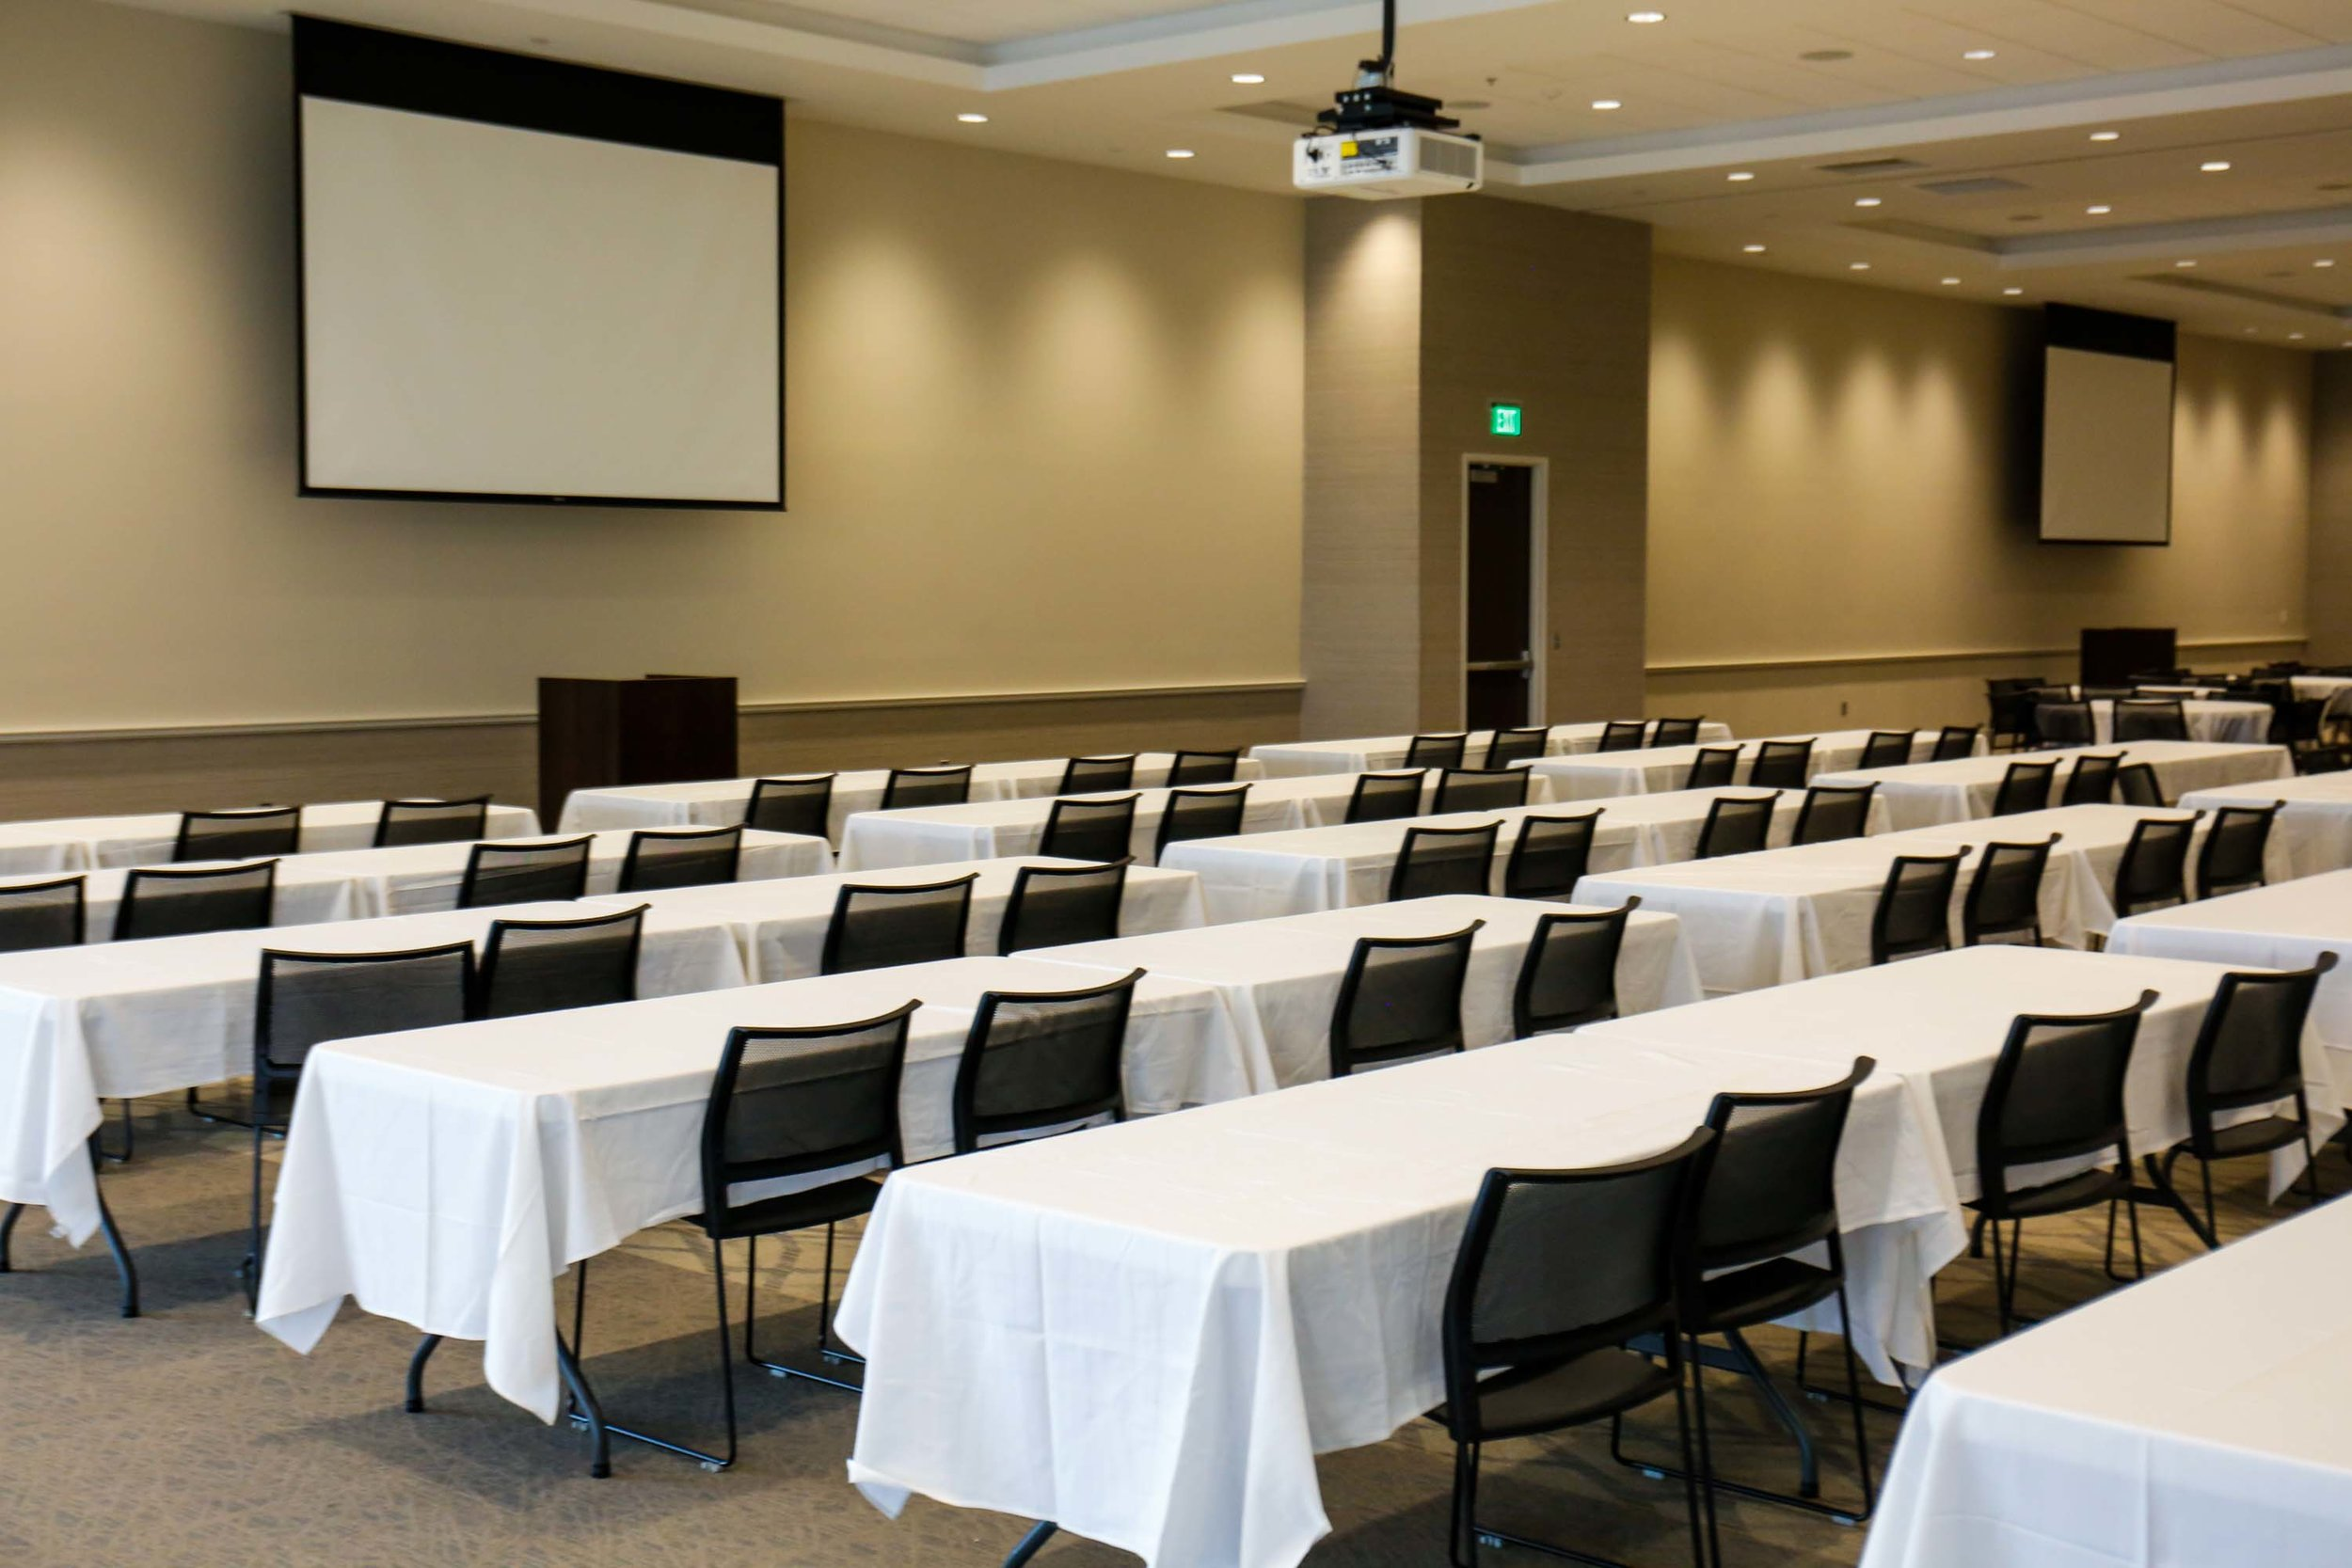 Where - 3 meeting rooms2 expansive halls1 giant main hallmore than 75,000 SF of possibilities!Our meeting rooms easily seat 200and our main hall easily seats 1200.